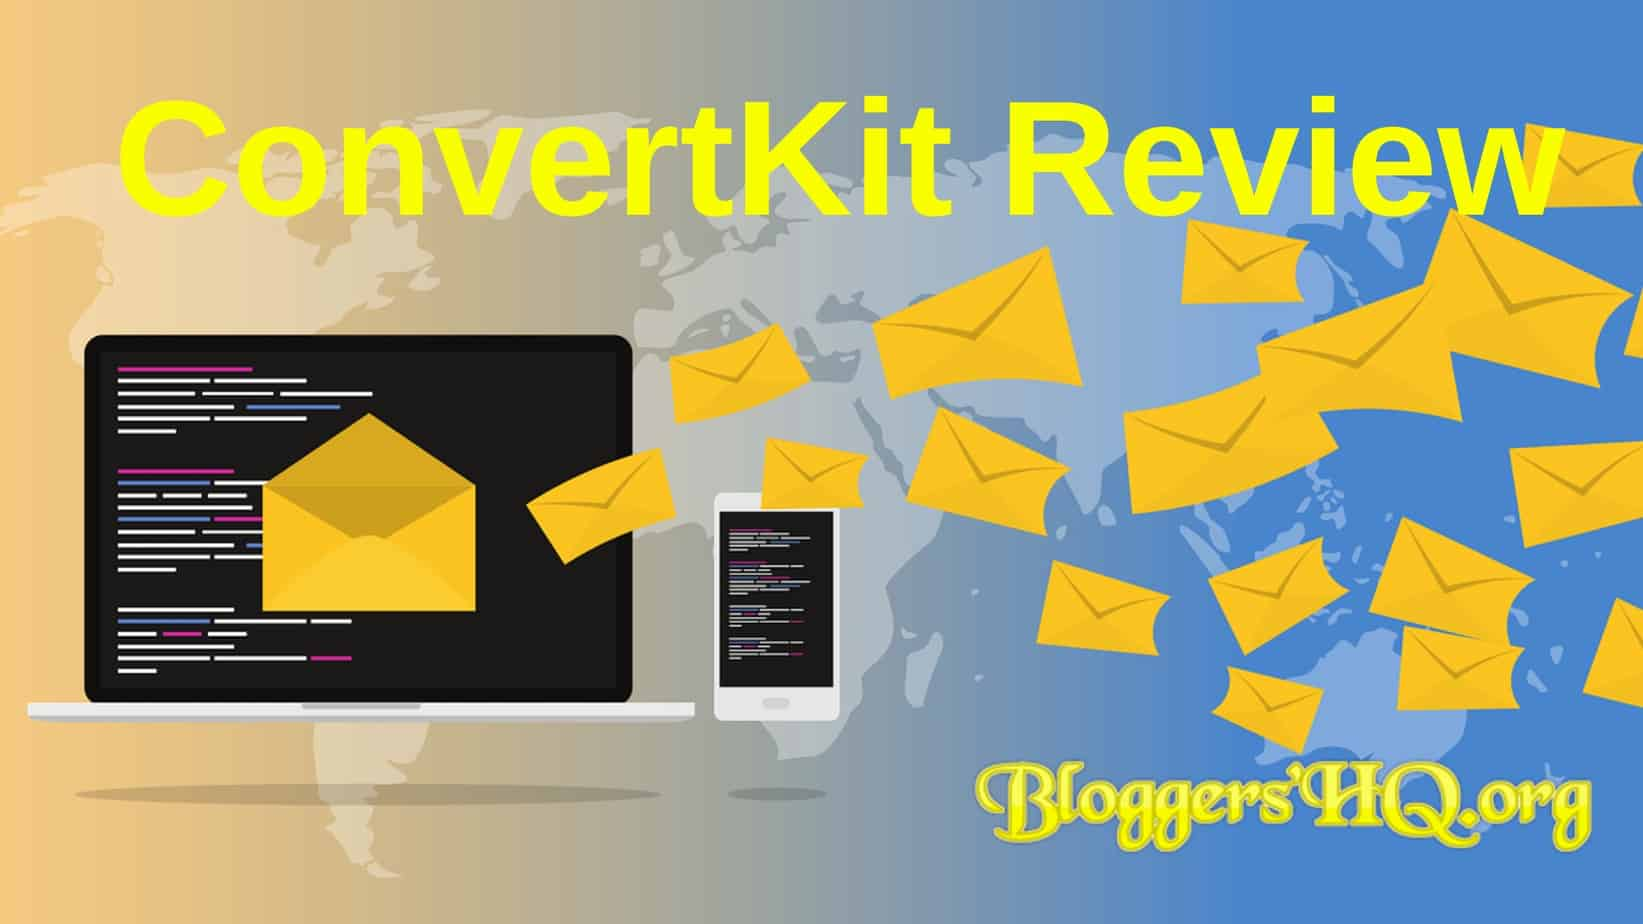 Convertkit Email Marketing Coupon Codes Online May